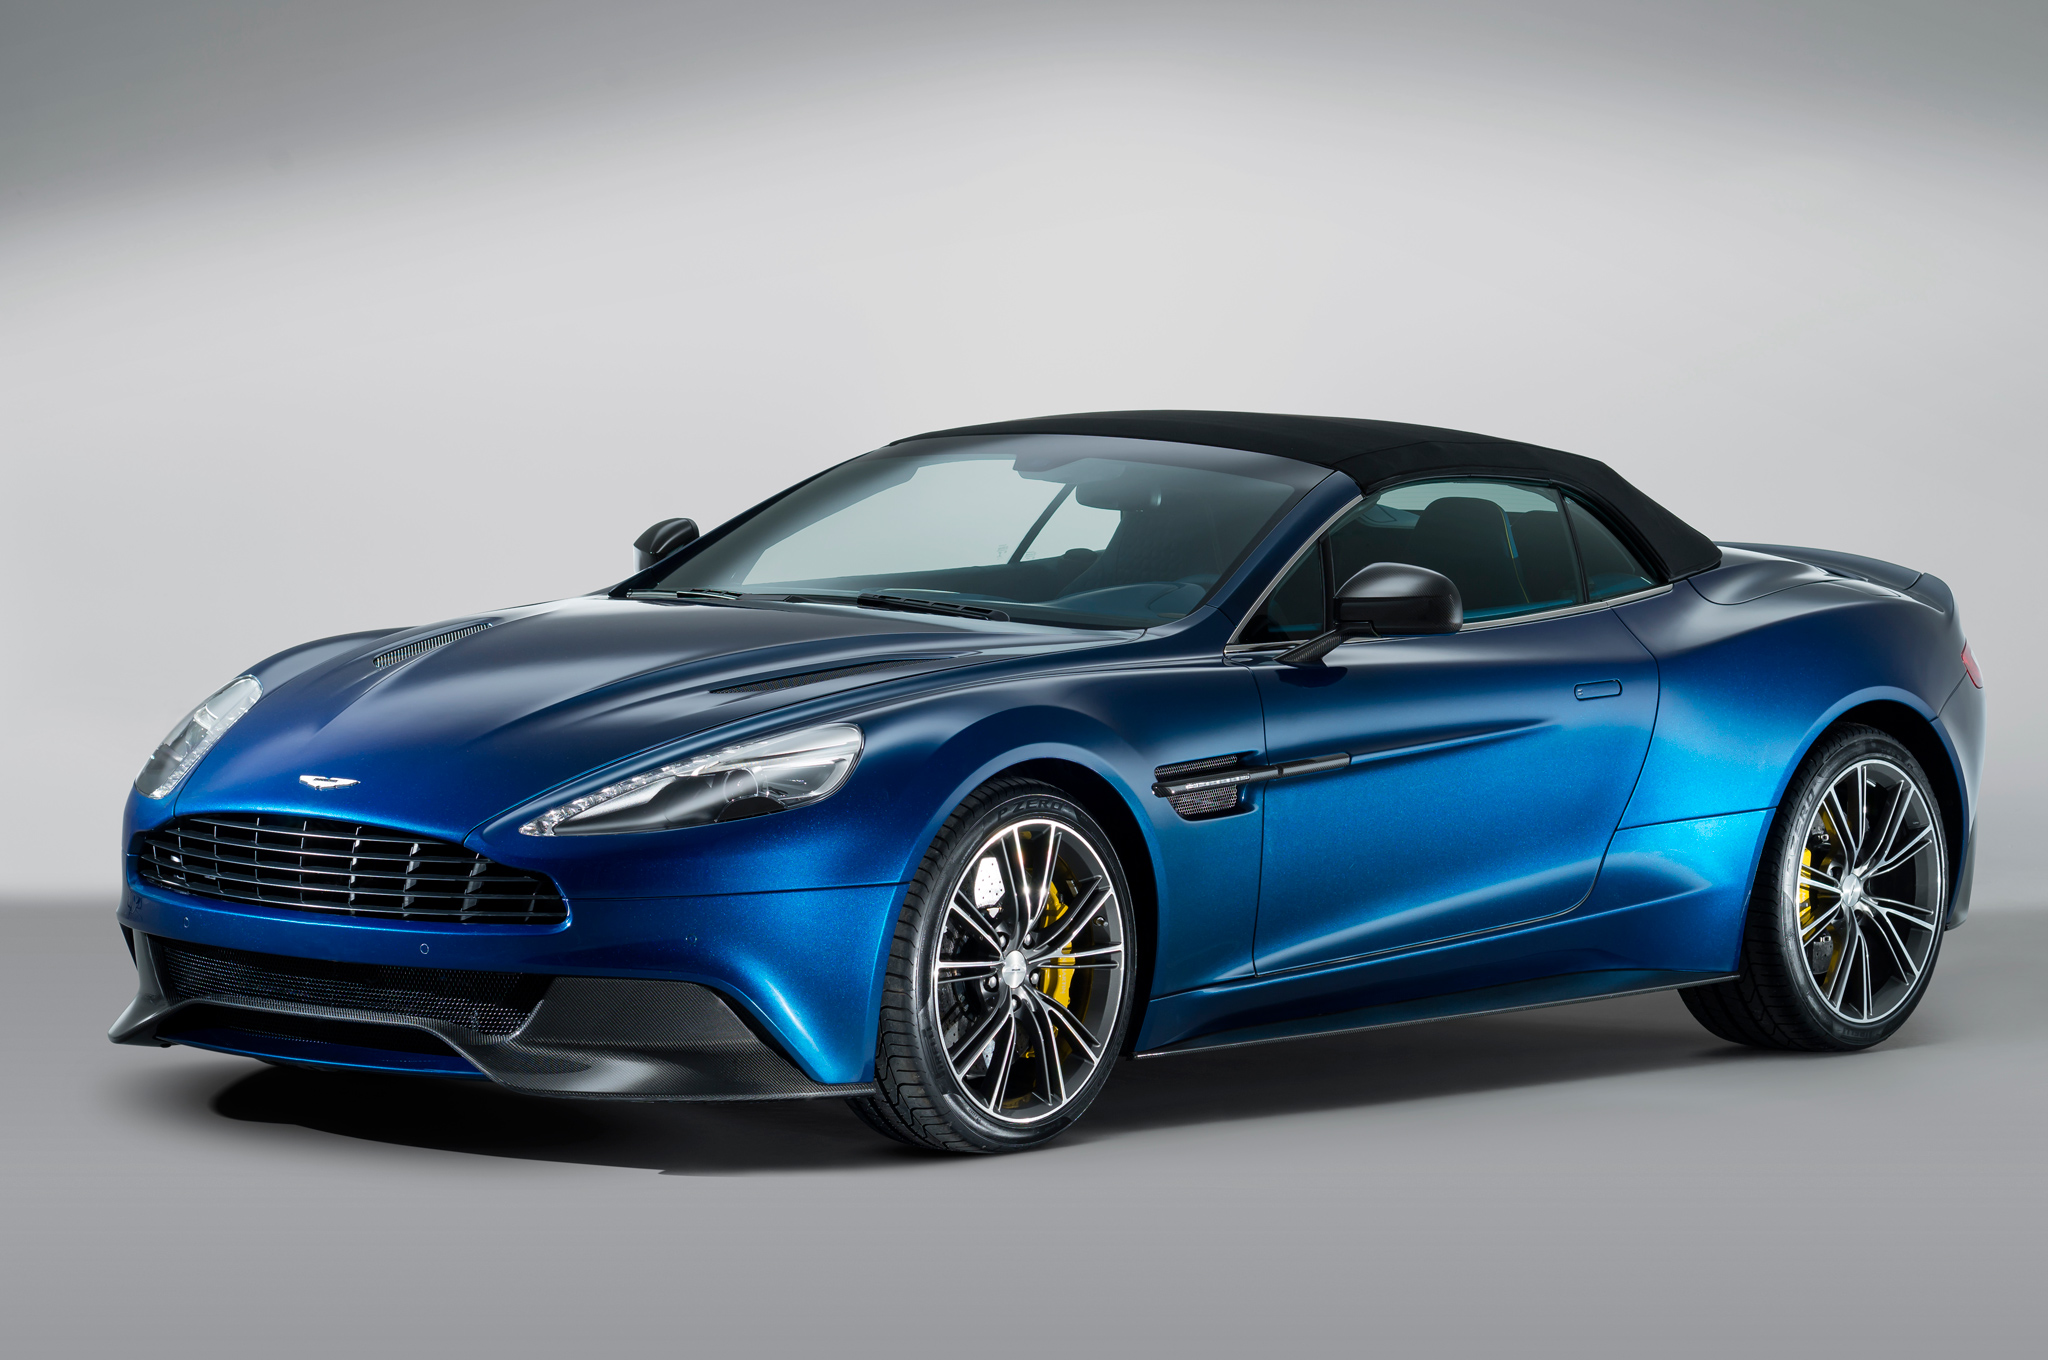 2014 Aston Martin Vanquish Volante 13 Aston Martin Celebrates Its 100th Year With The All New 2014 Vanquish Volante